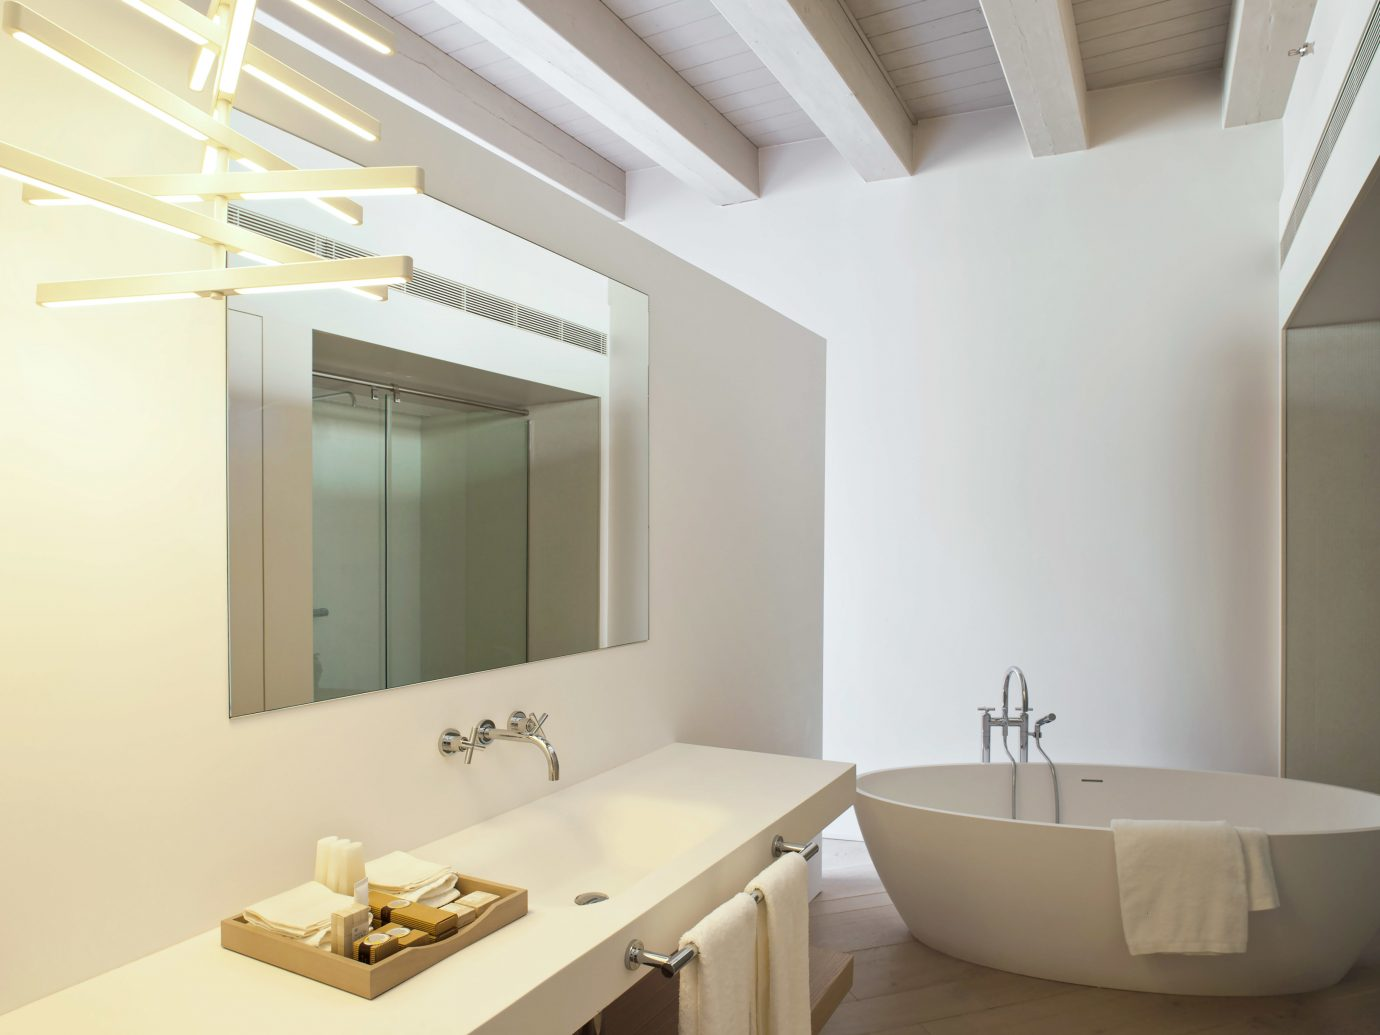 Barcelona Bath Boutique City Hip Hotels Luxury Modern Spain wall bathroom indoor room mirror property sink floor white interior design home Design daylighting ceiling bathtub apartment tan